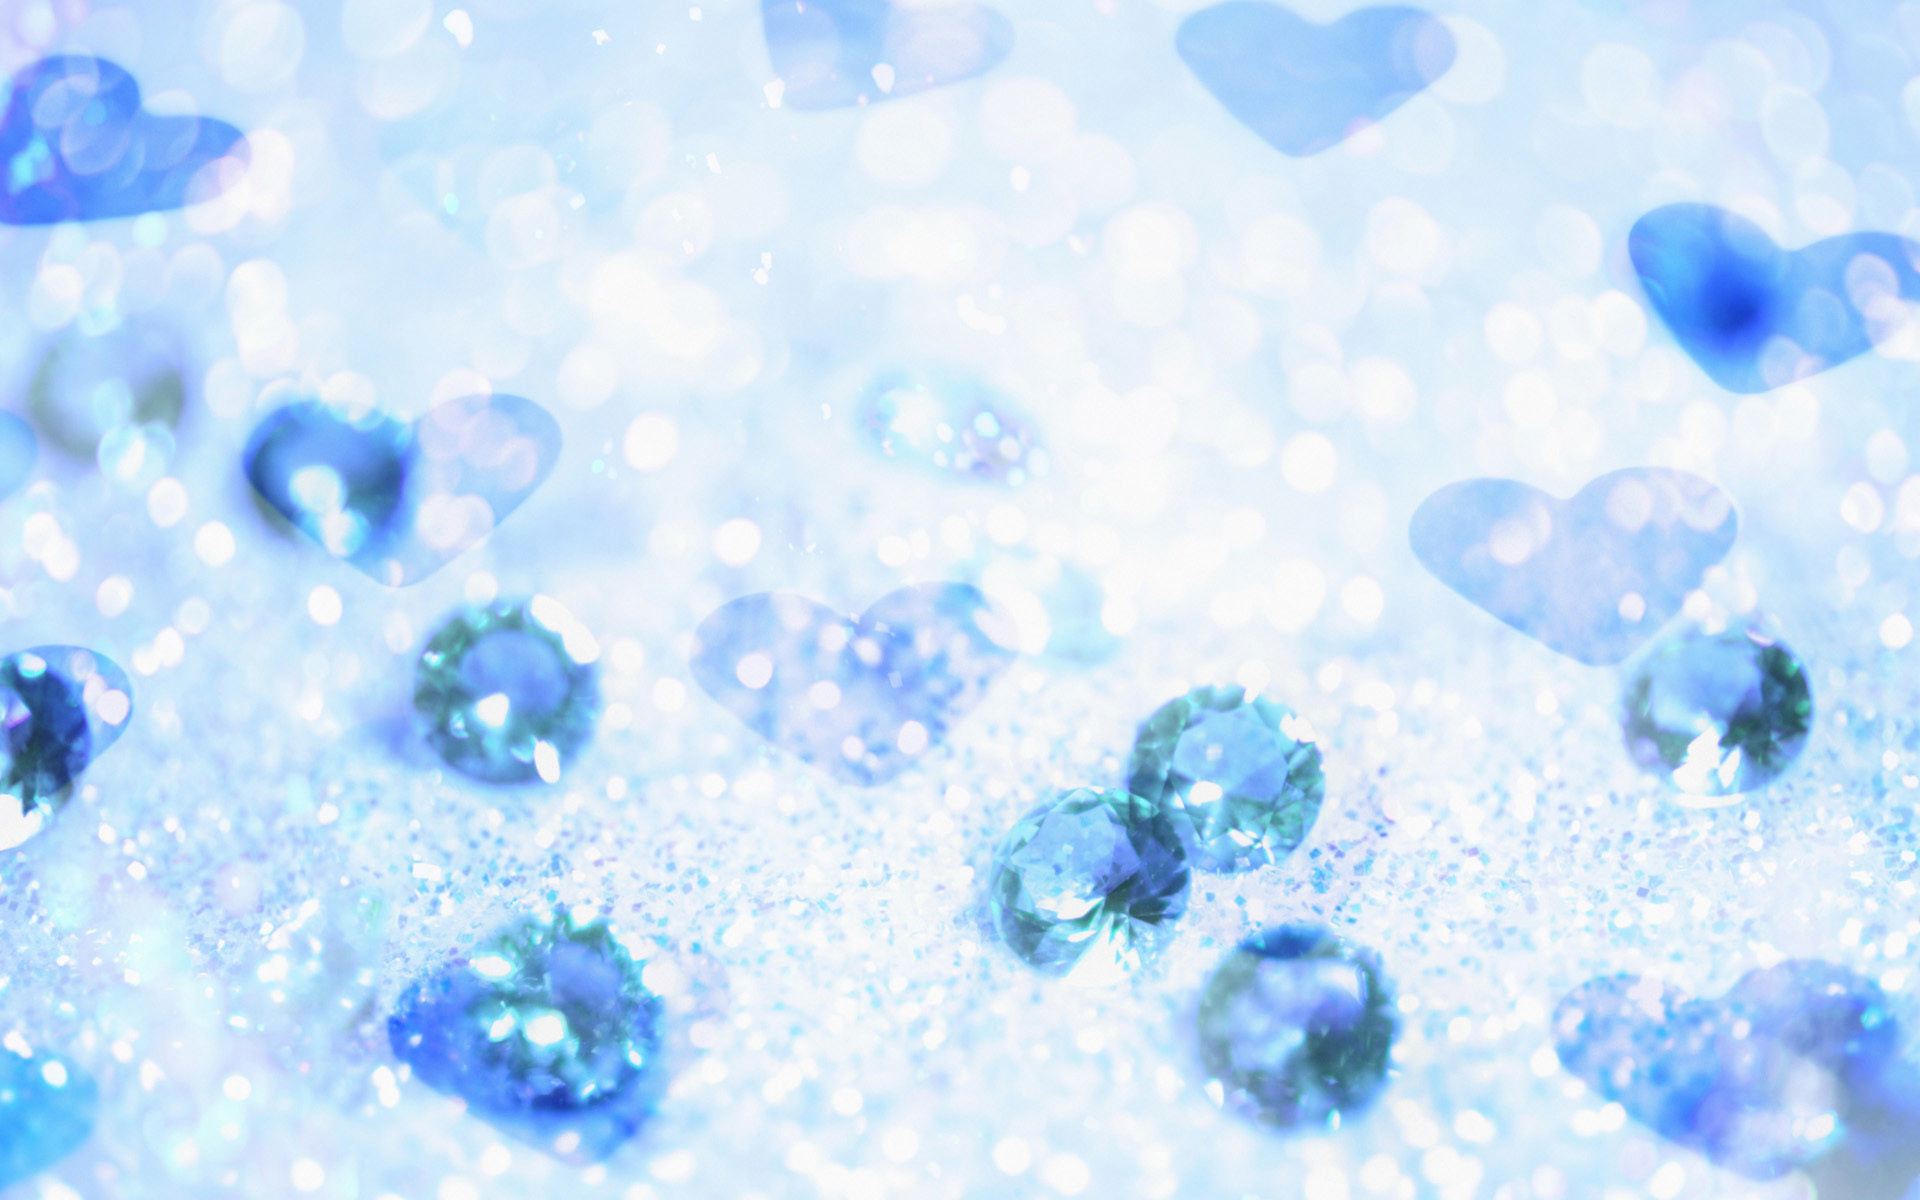 Icy Blue Heart Wallpaper For Beloved